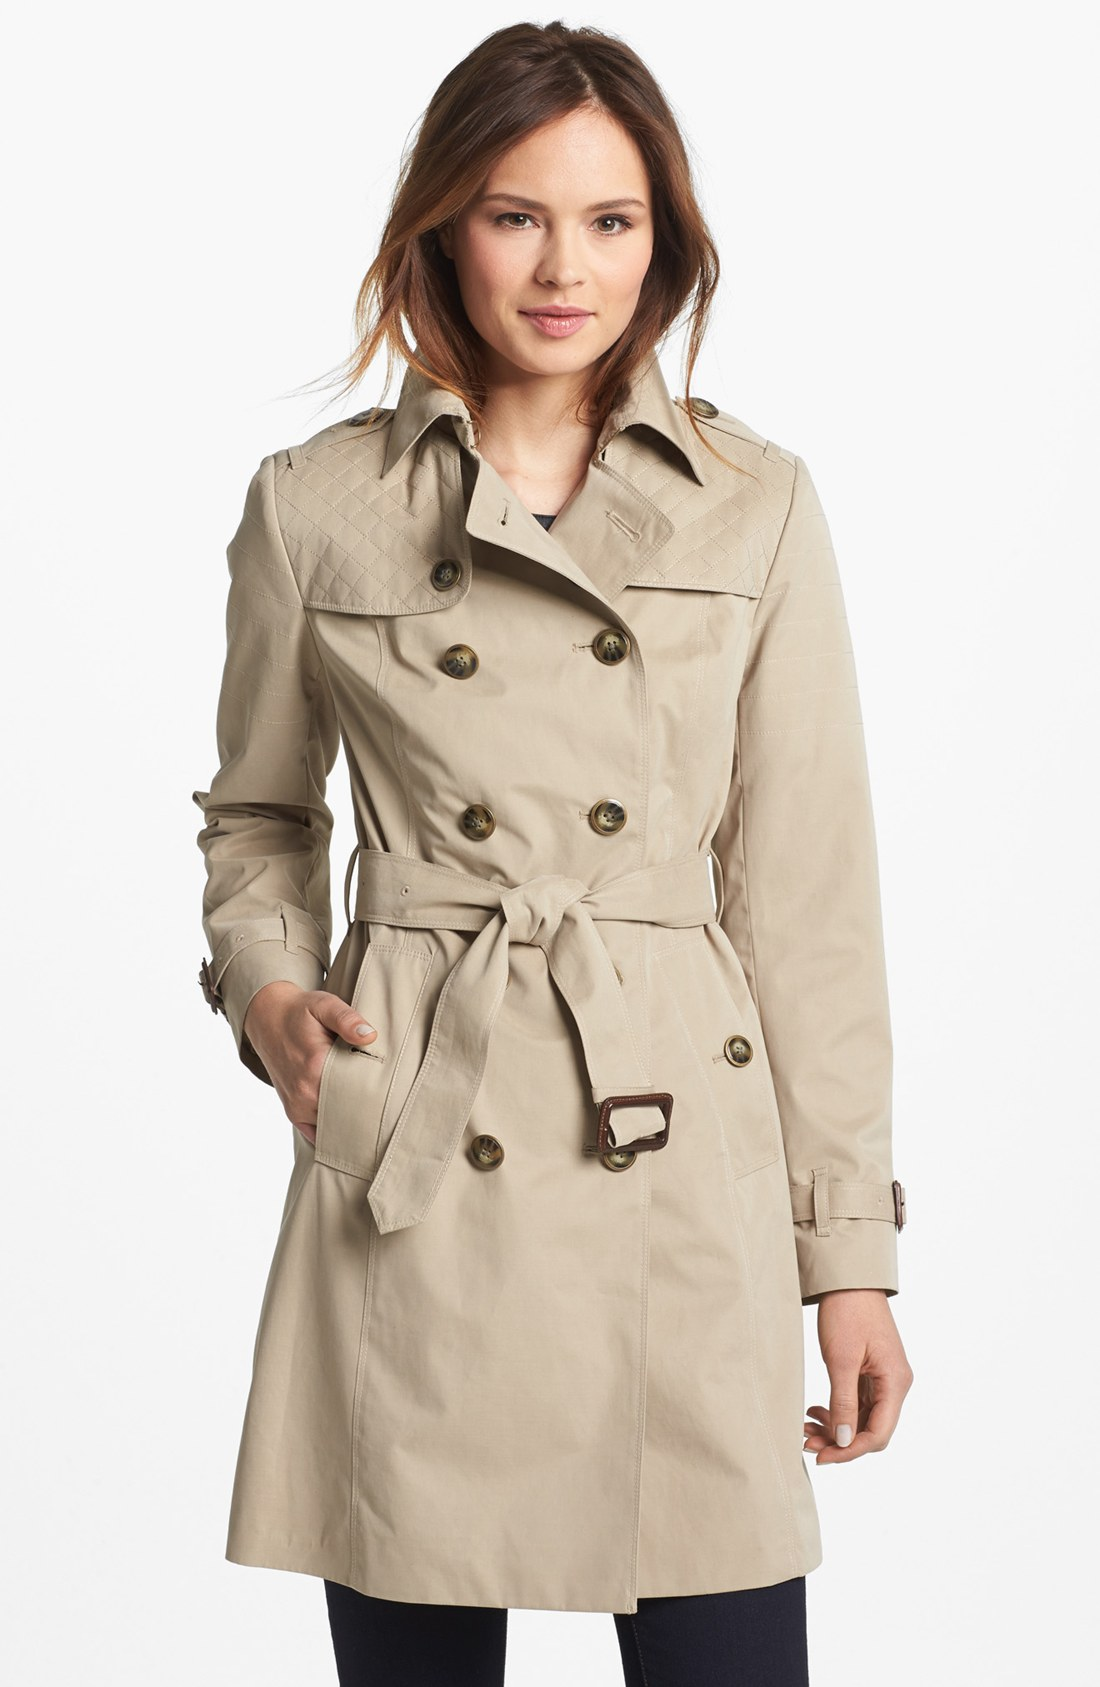 Women S London Fog Trench Coat Photo Album - Reikian